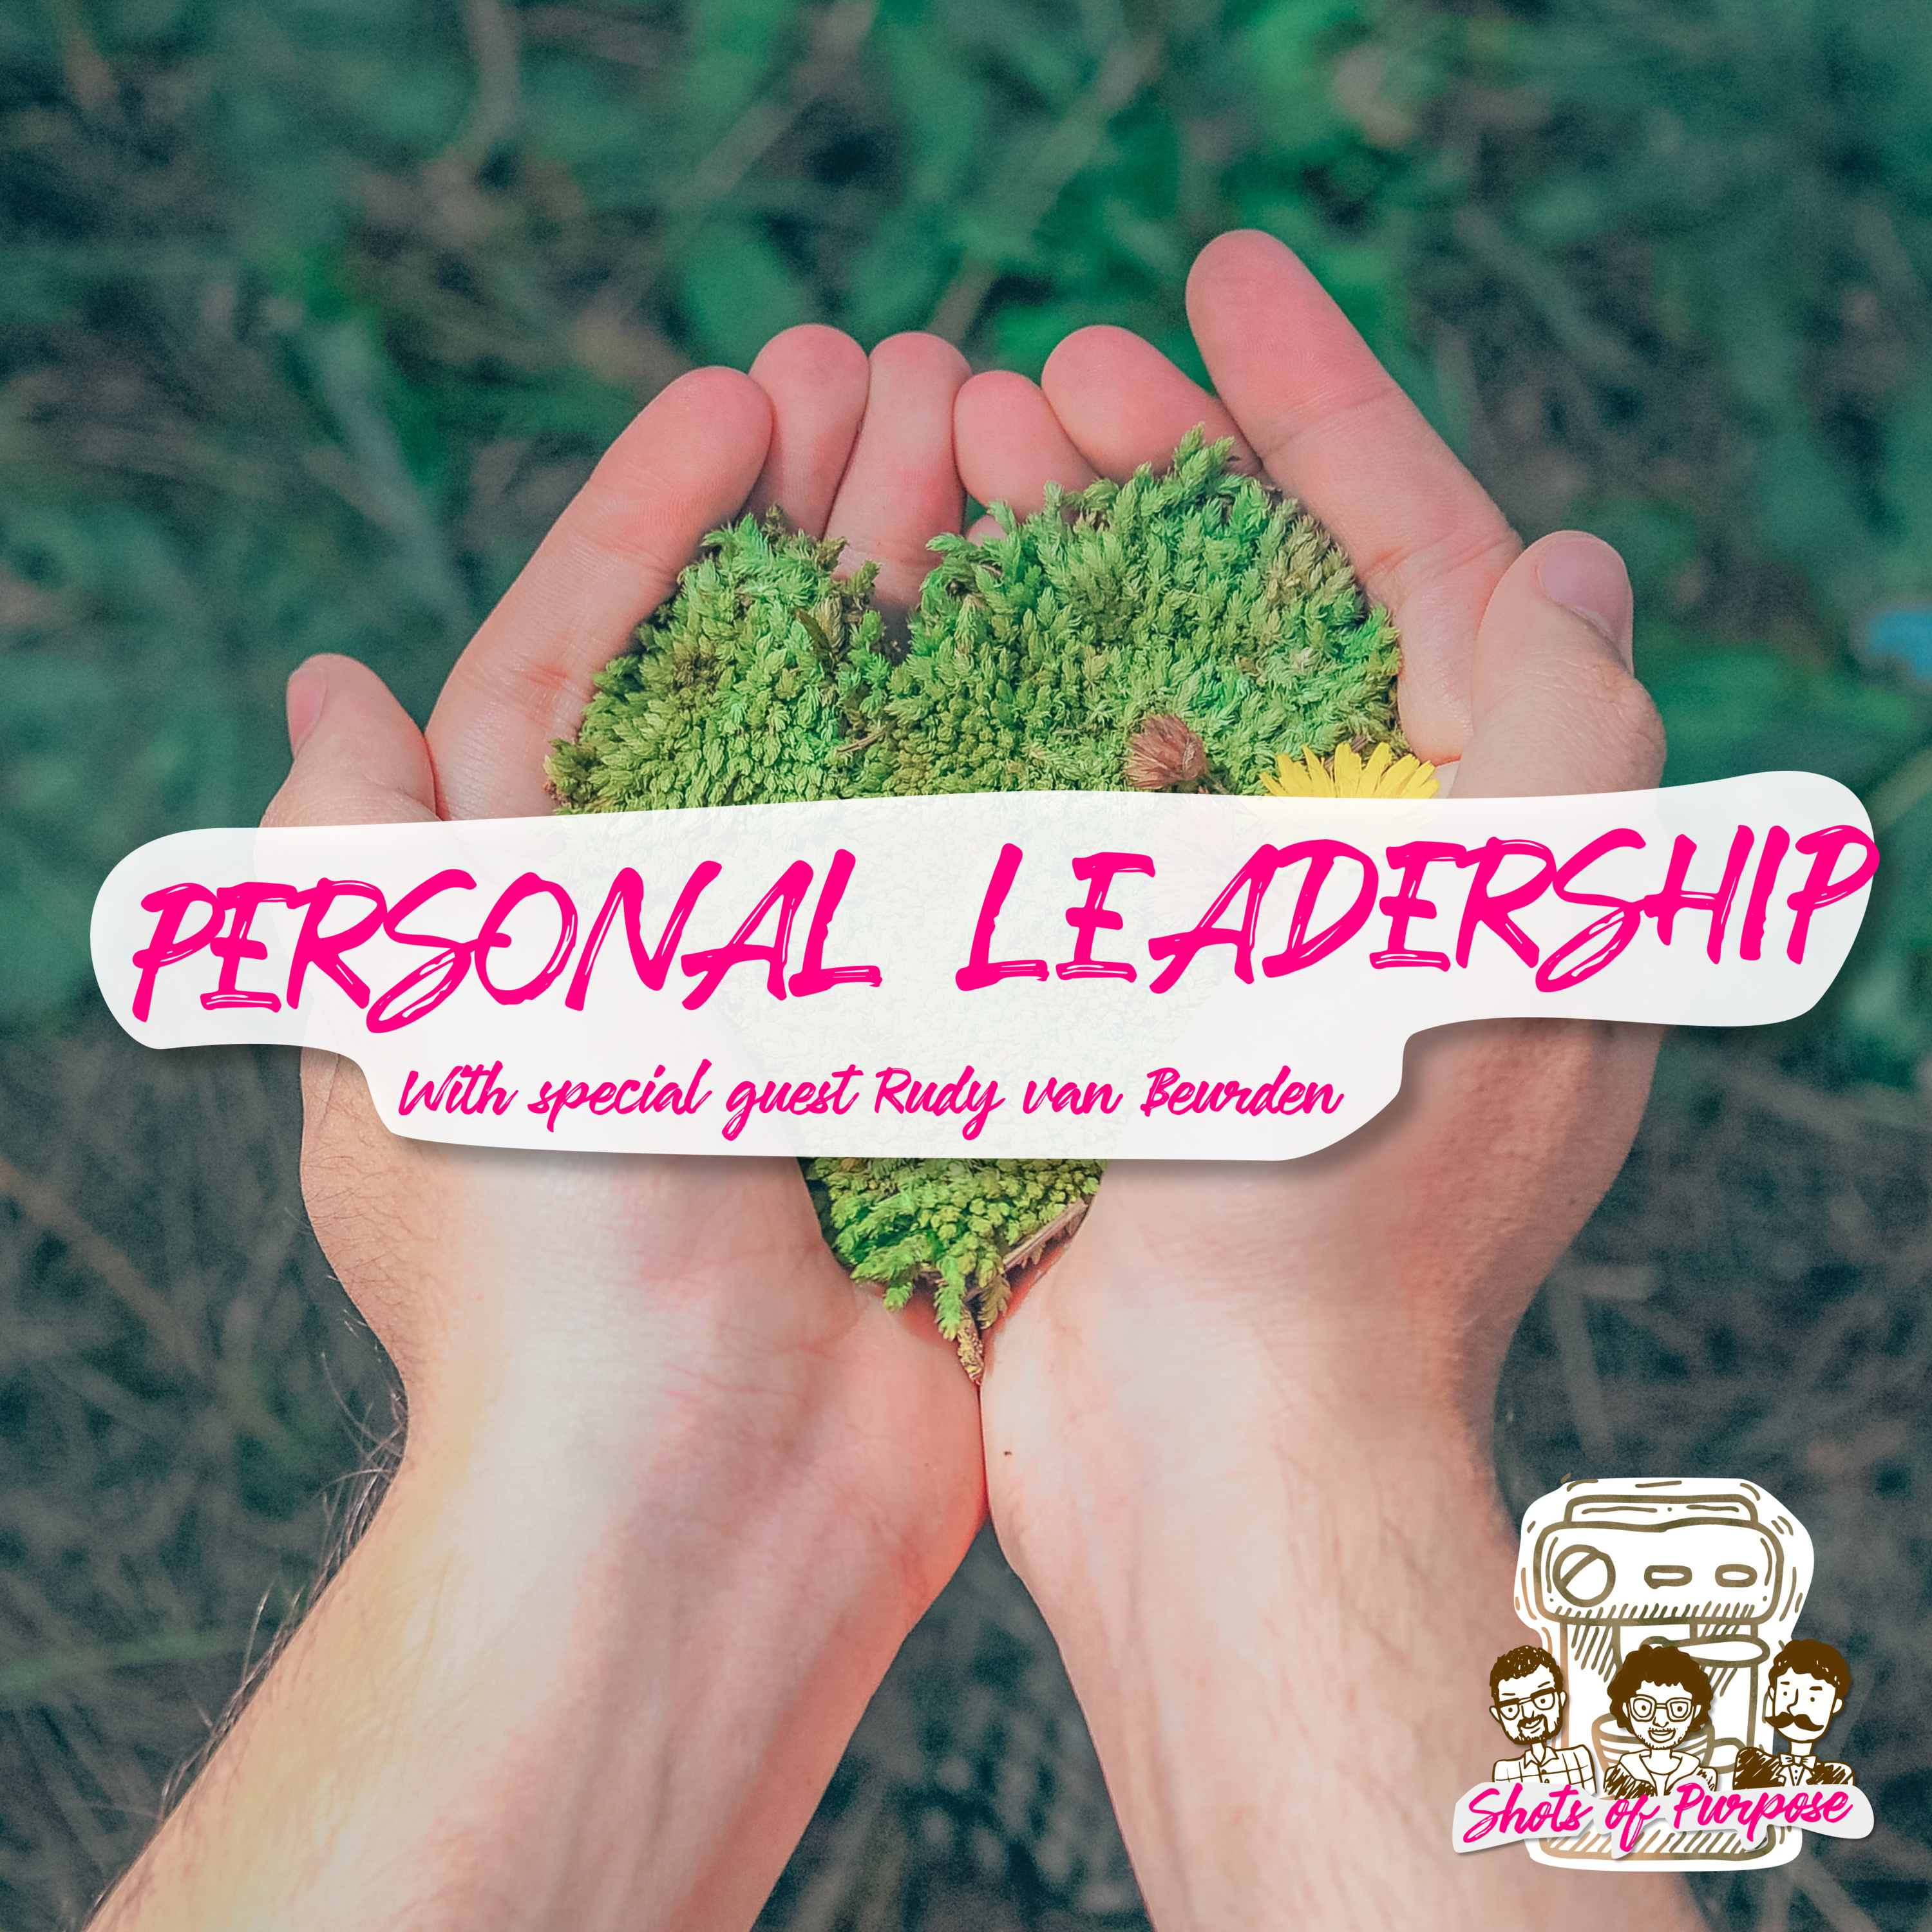 #10 Personal Leadership with Positivity Guru Rudy van Beurden